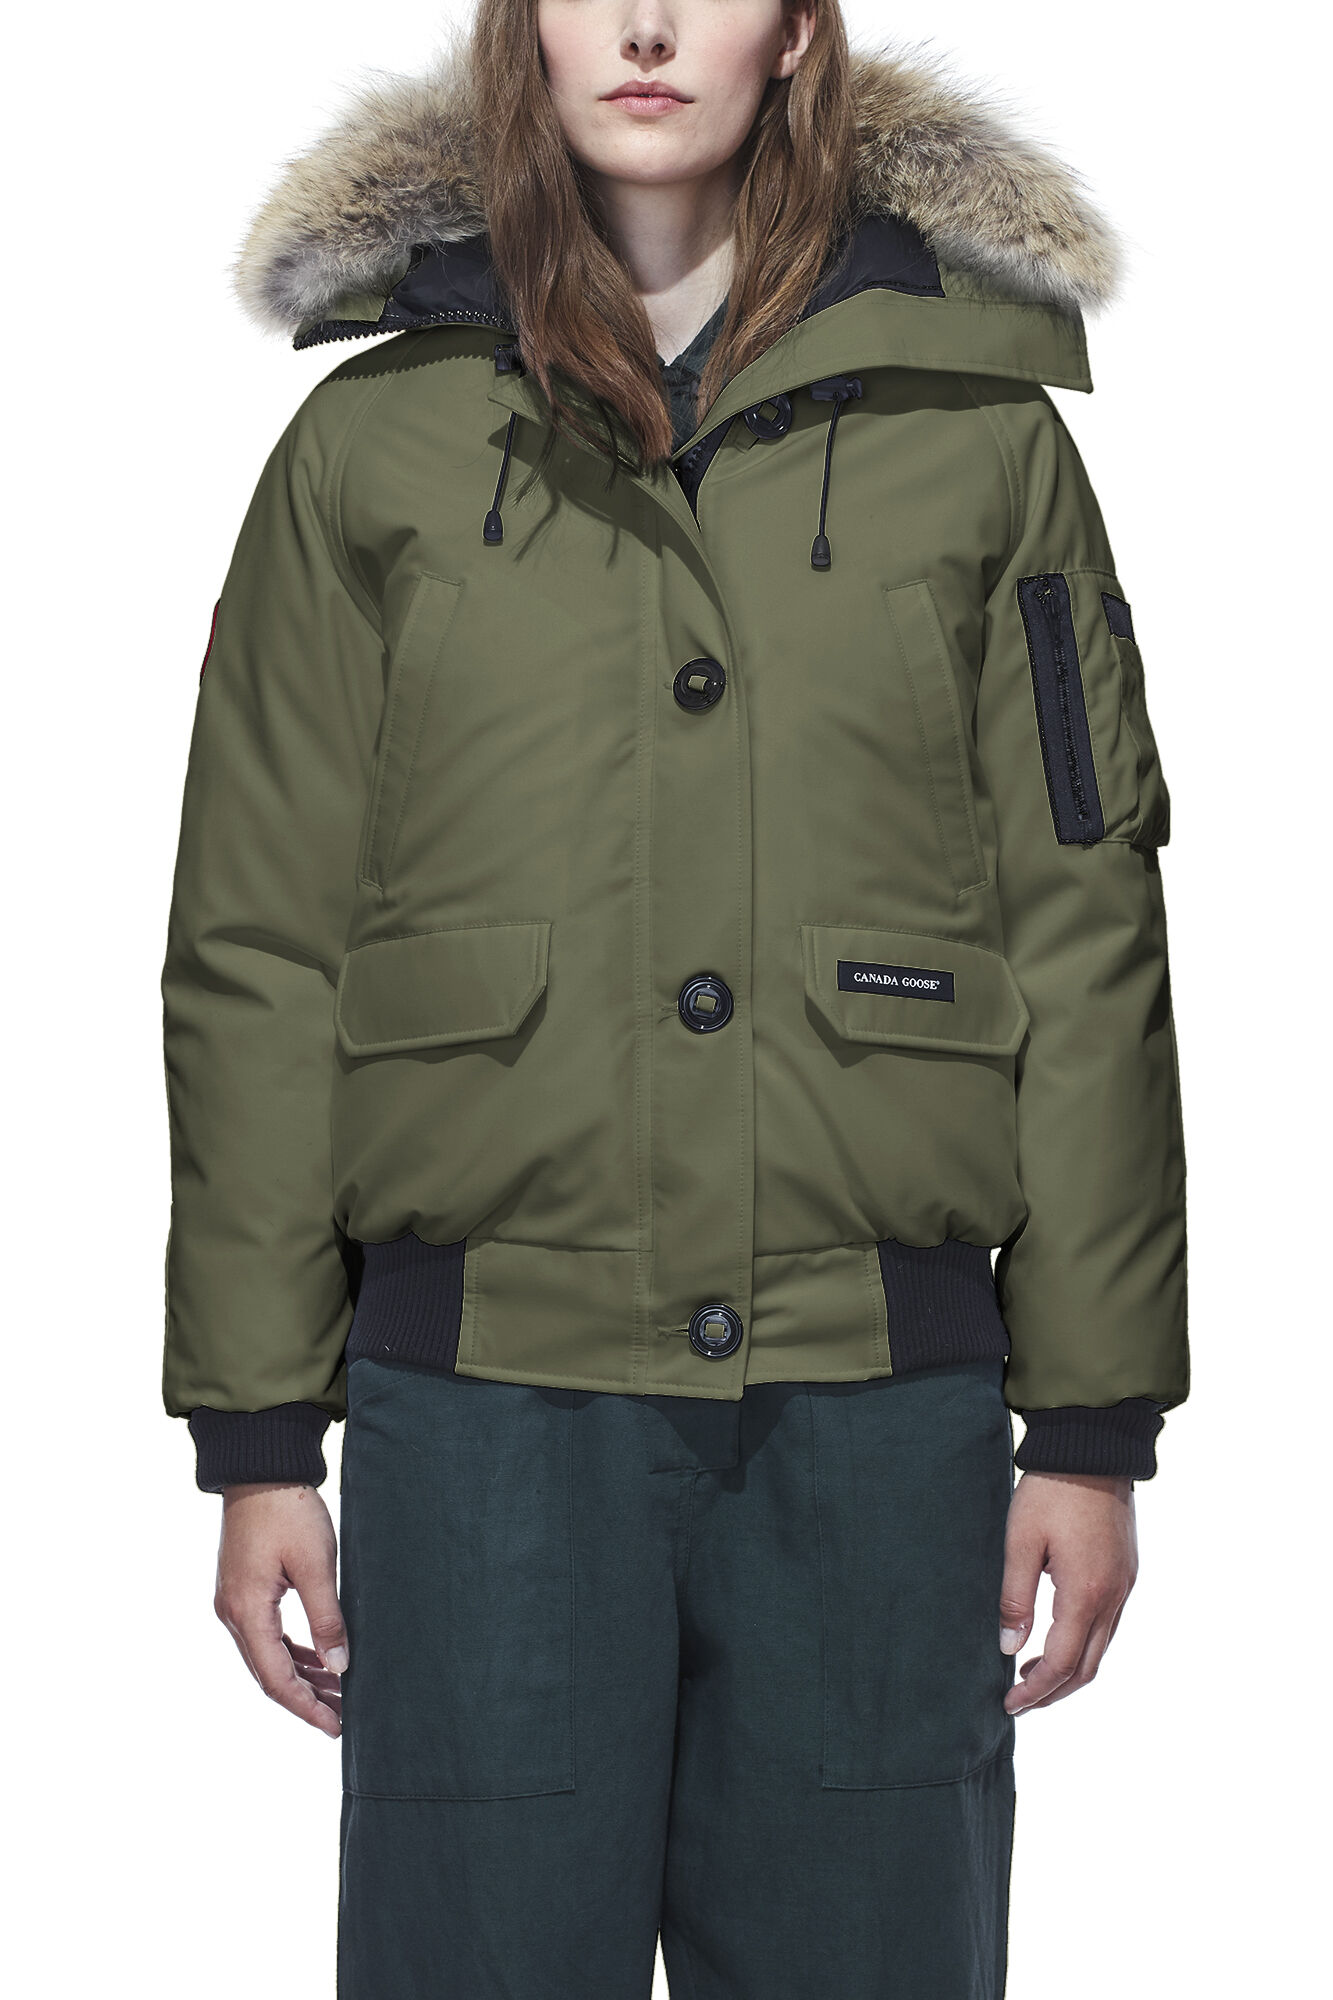 chilliwack black single women Canada goose outerwear for women is available at our online designer clothing store shop canada goose coats, parkas and other legendary outerwear onlinea canada.